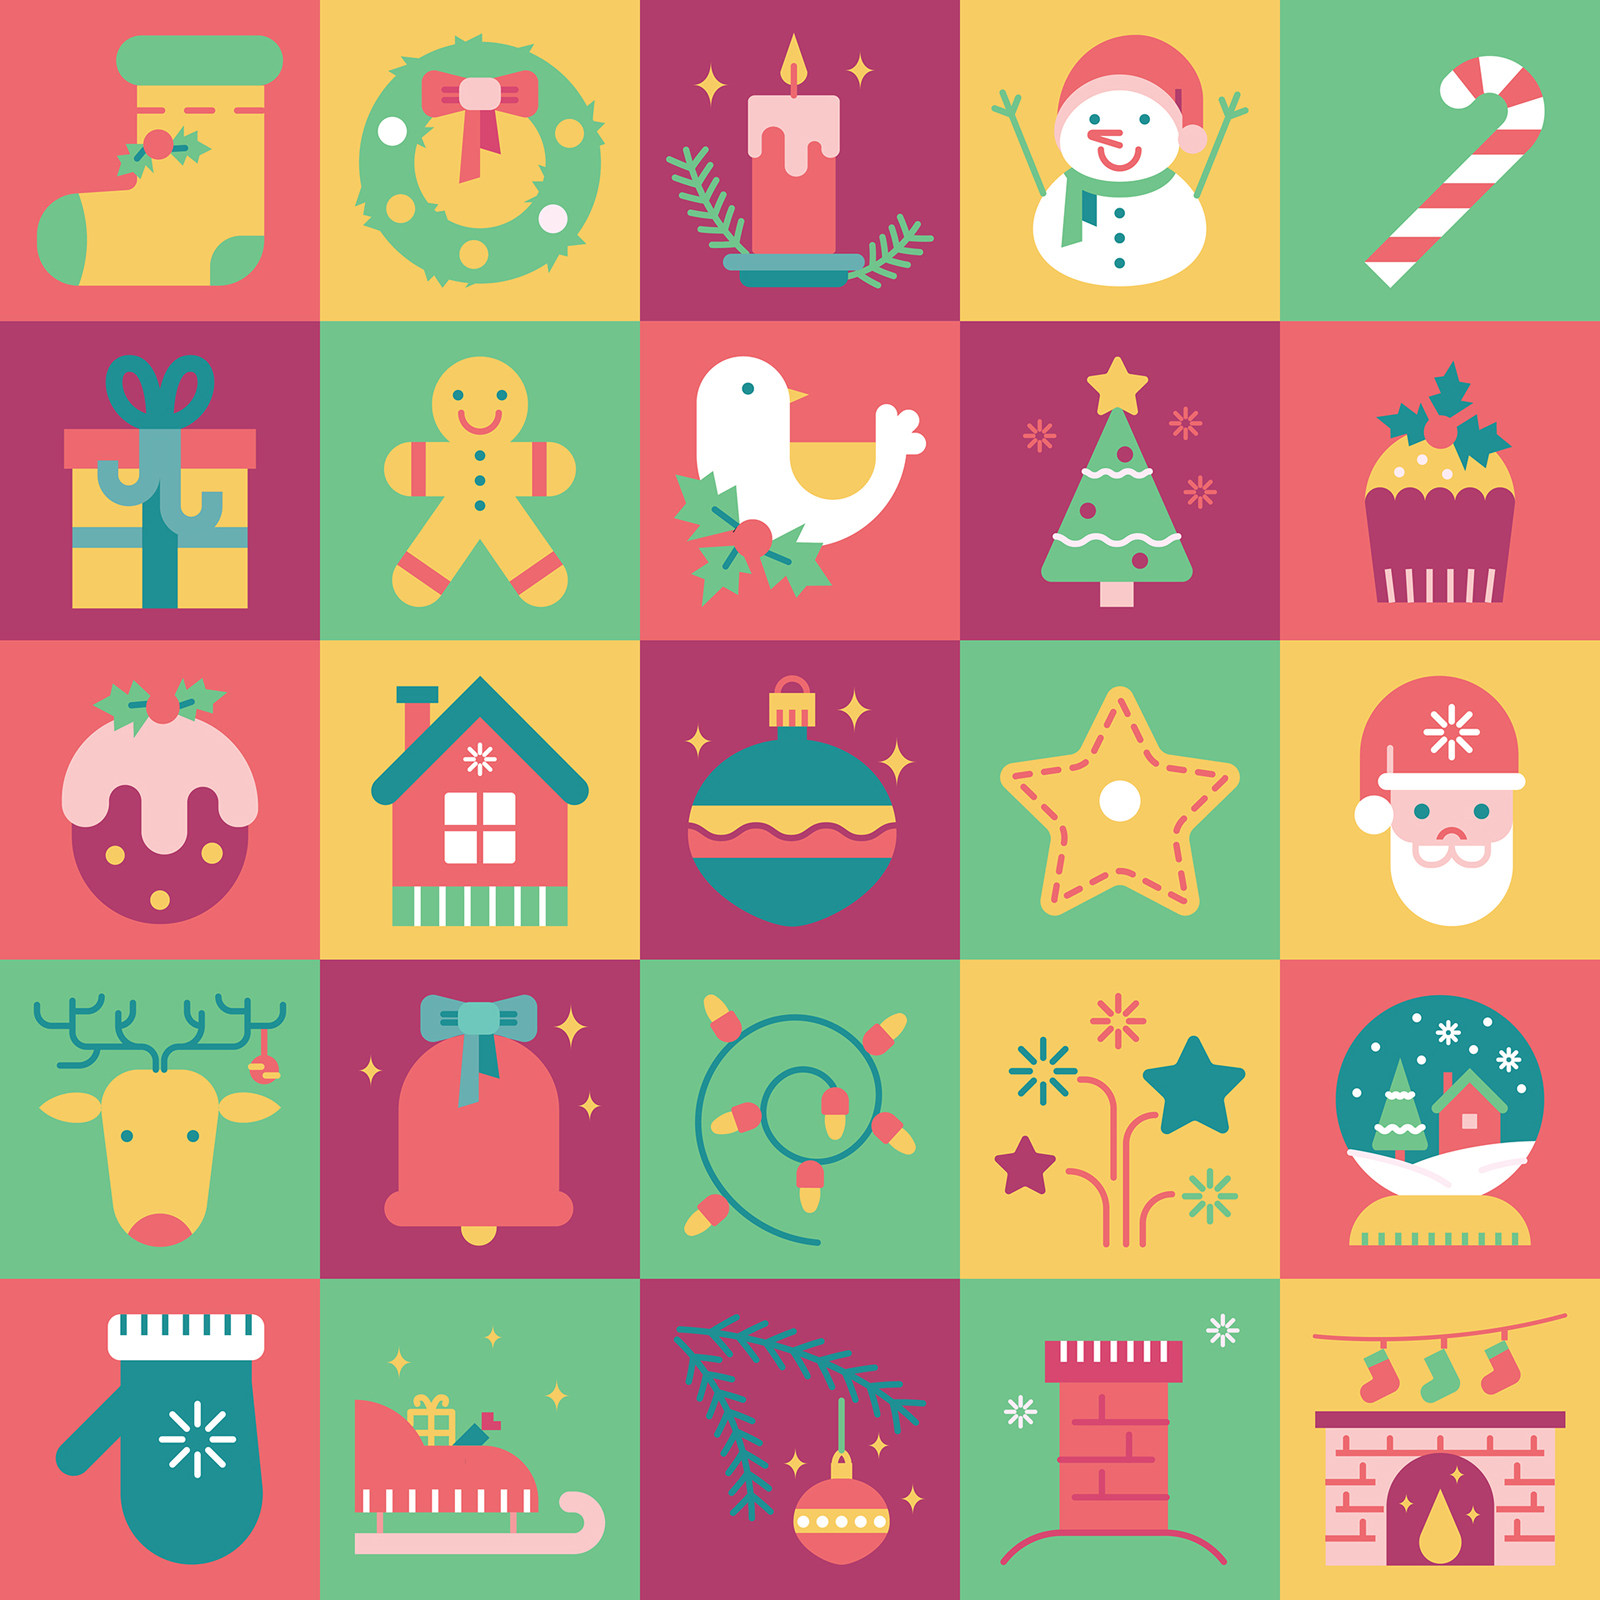 Christmas icon set design by hakaba chan